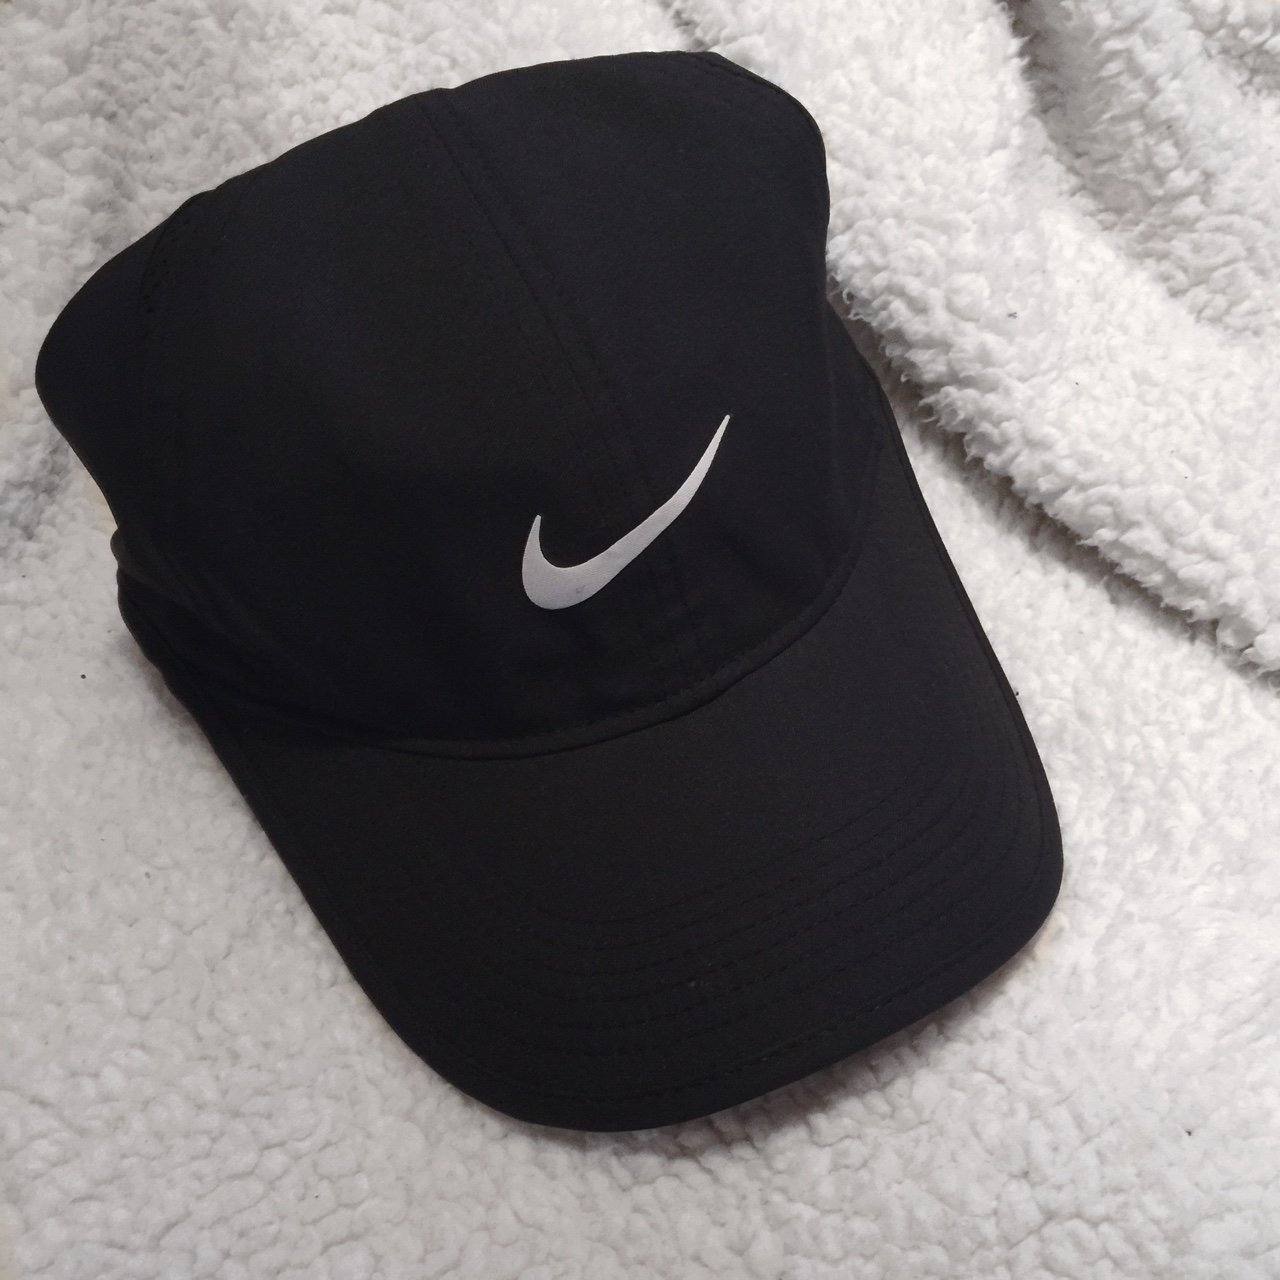 d0c964fc53e Nike feather light Dri-Fit hat. In excellent condition with - Depop